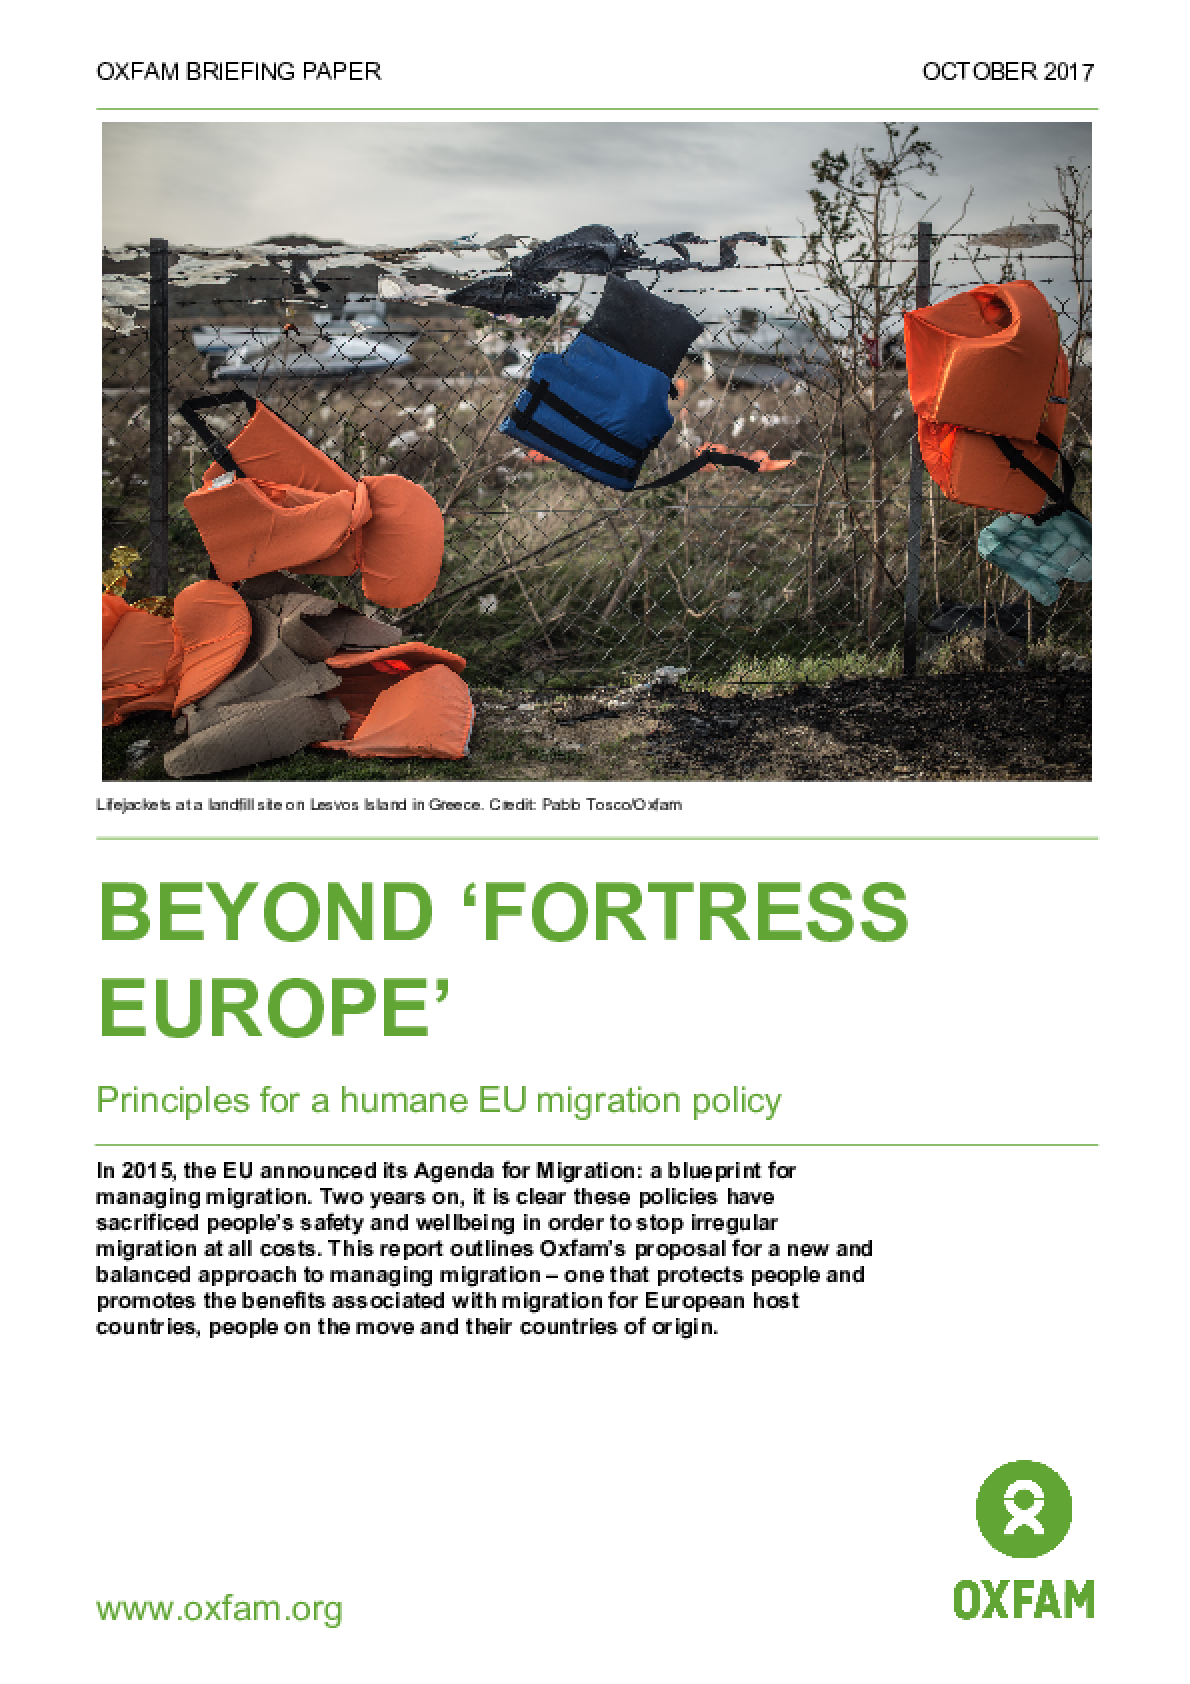 Beyond 'Fortress Europe': Principles for a humane EU migration policy